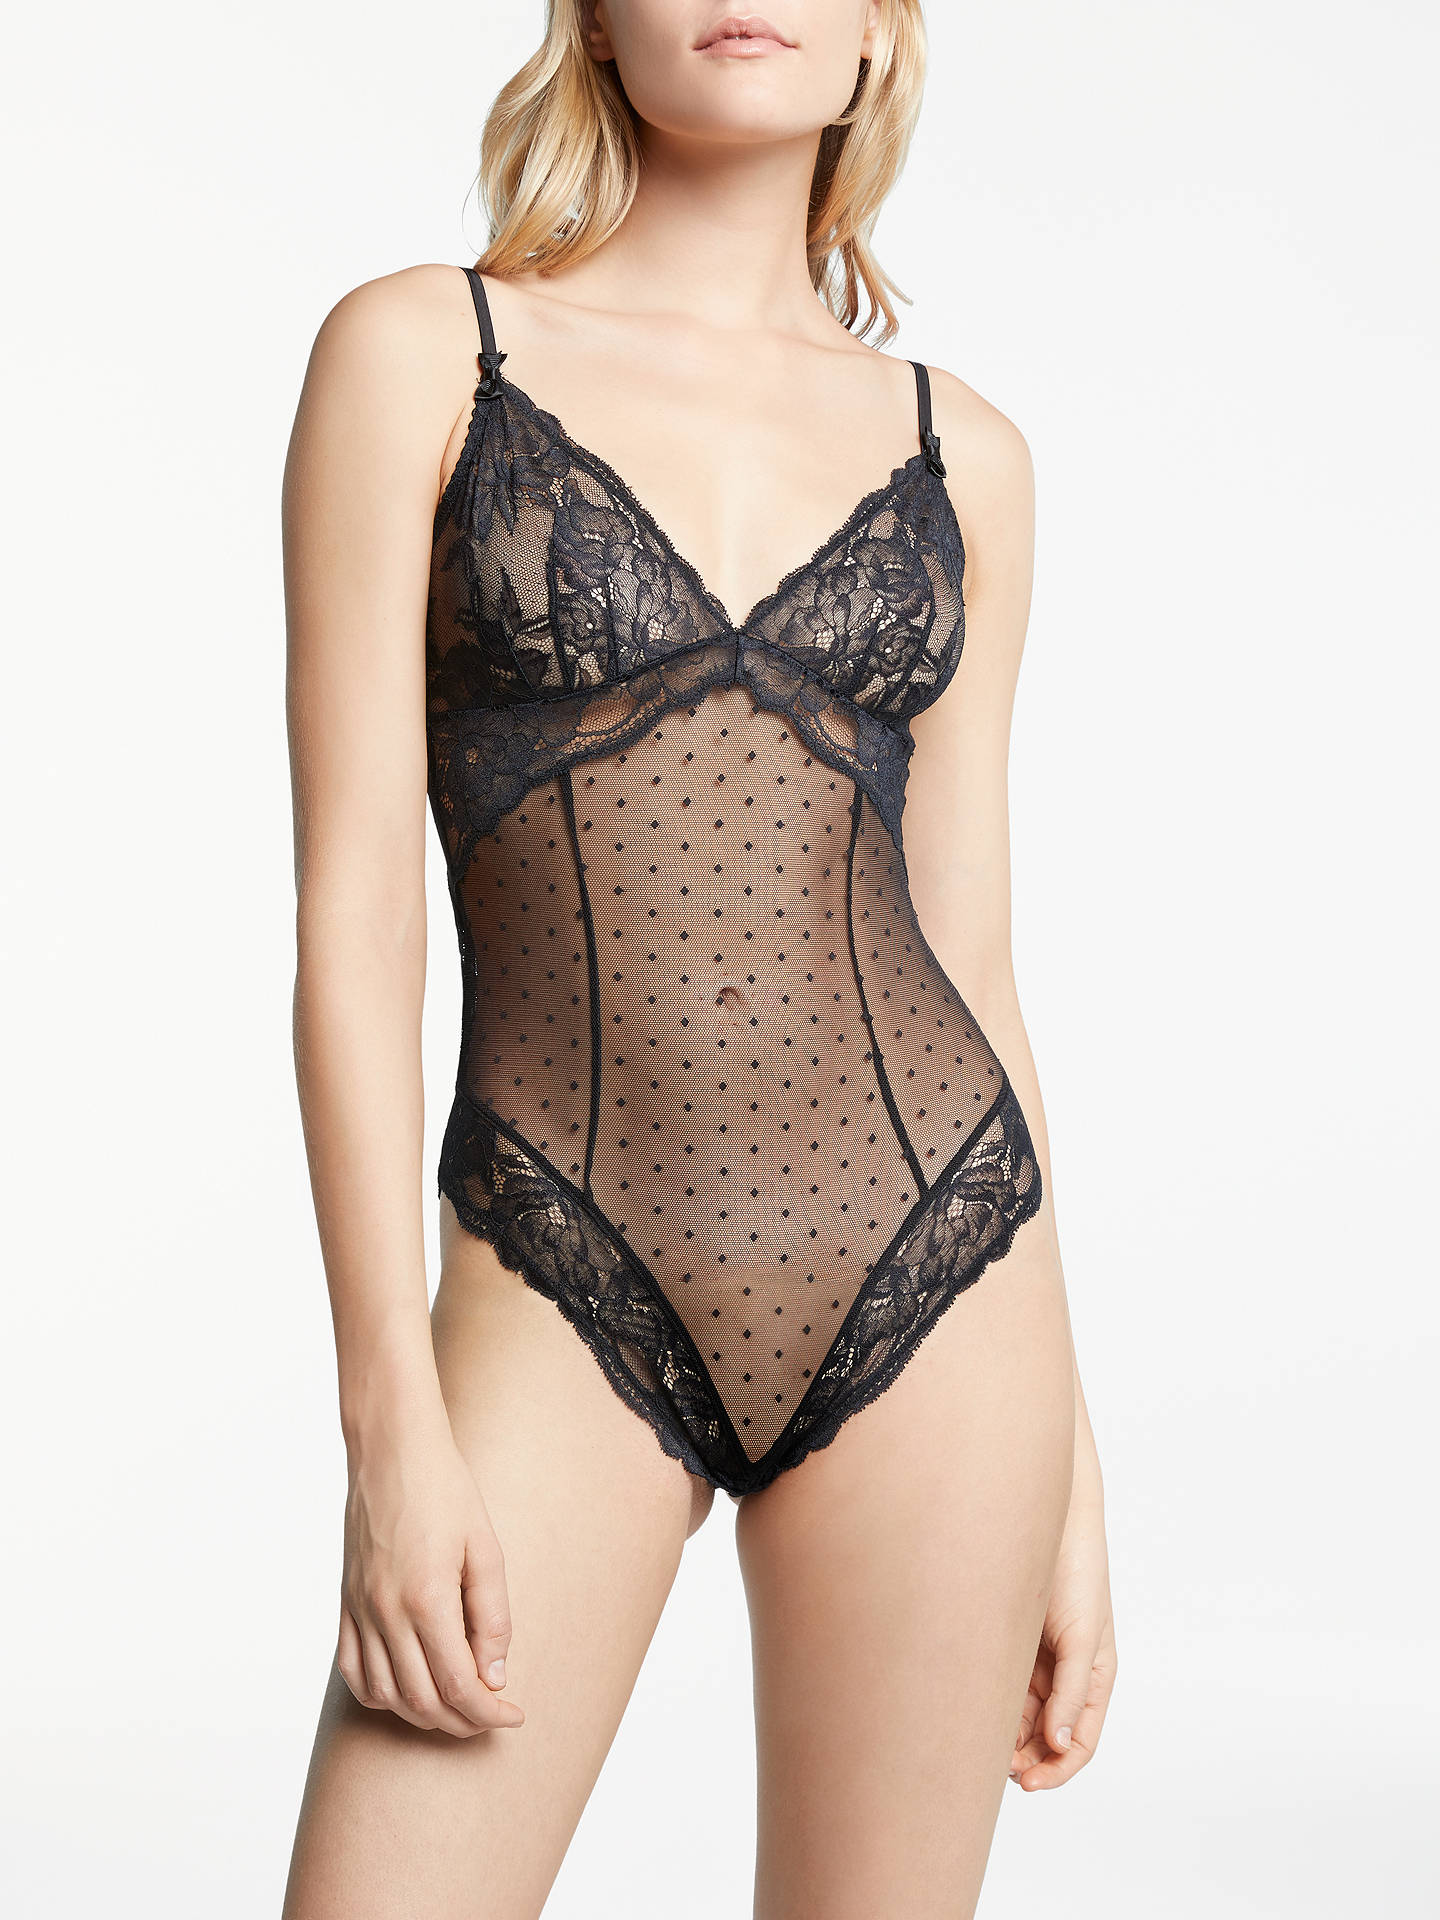 6808ed6621a AND/OR Arabella Lace Body, Black at John Lewis & Partners